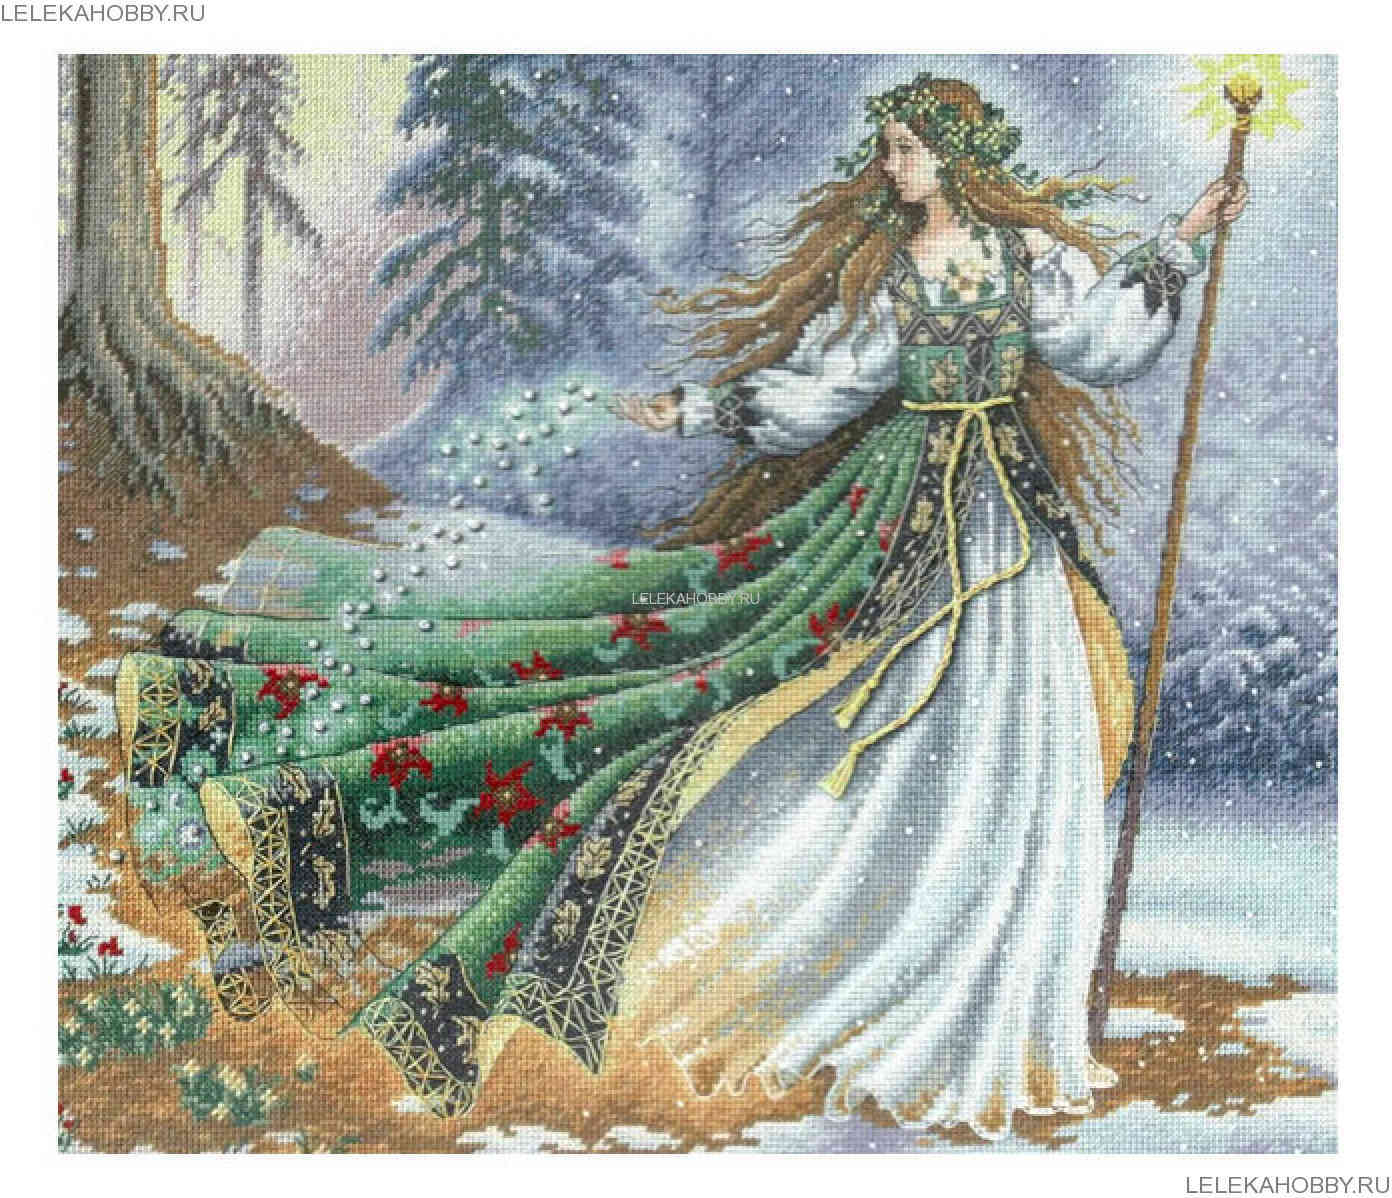 Faries woodlaand nymphs elves and other mystical  porn pic